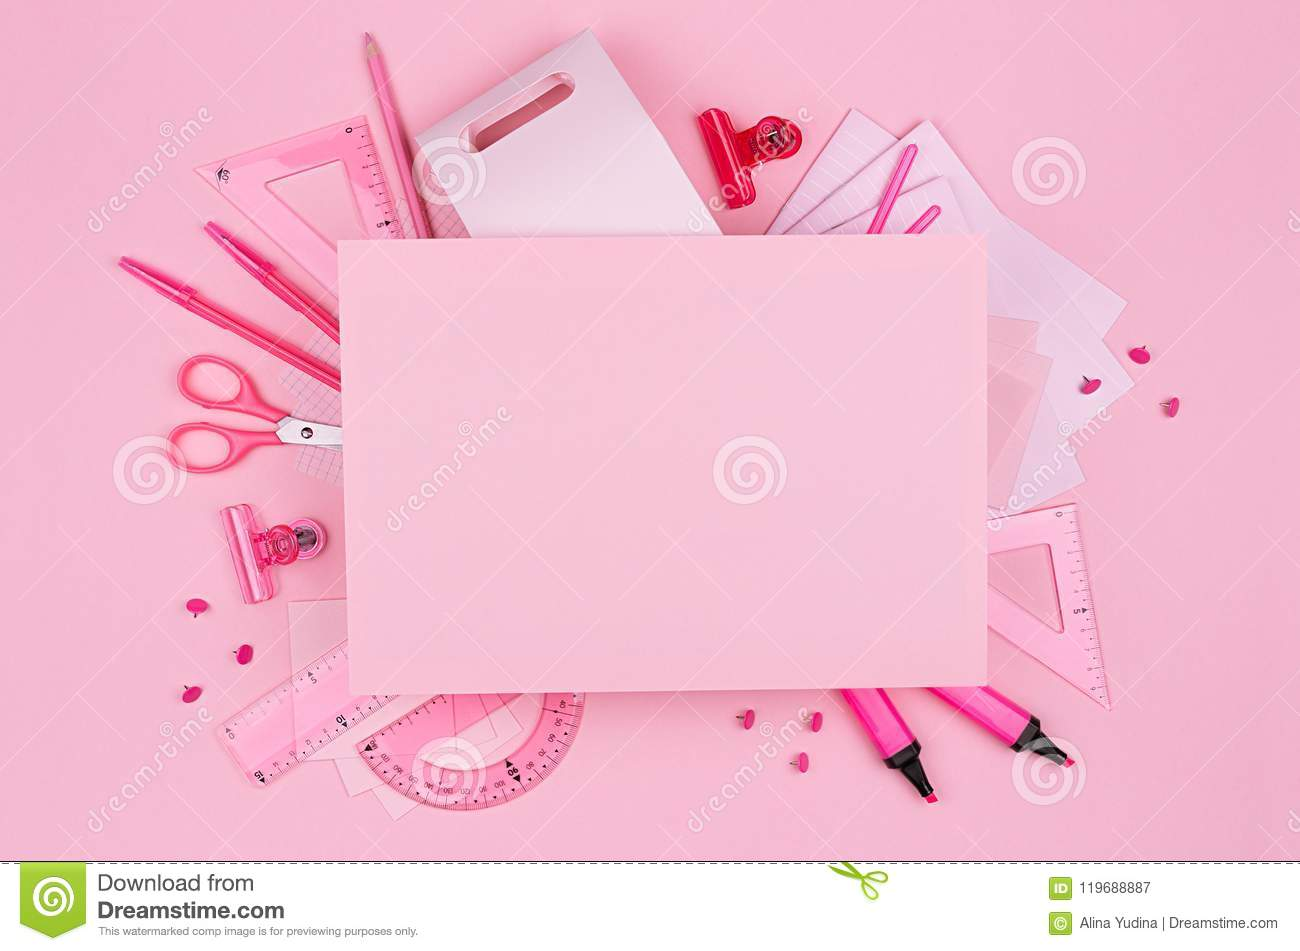 Pastel pink color office blank paper and stationery set on pink background, concept art for advertising, business, design.